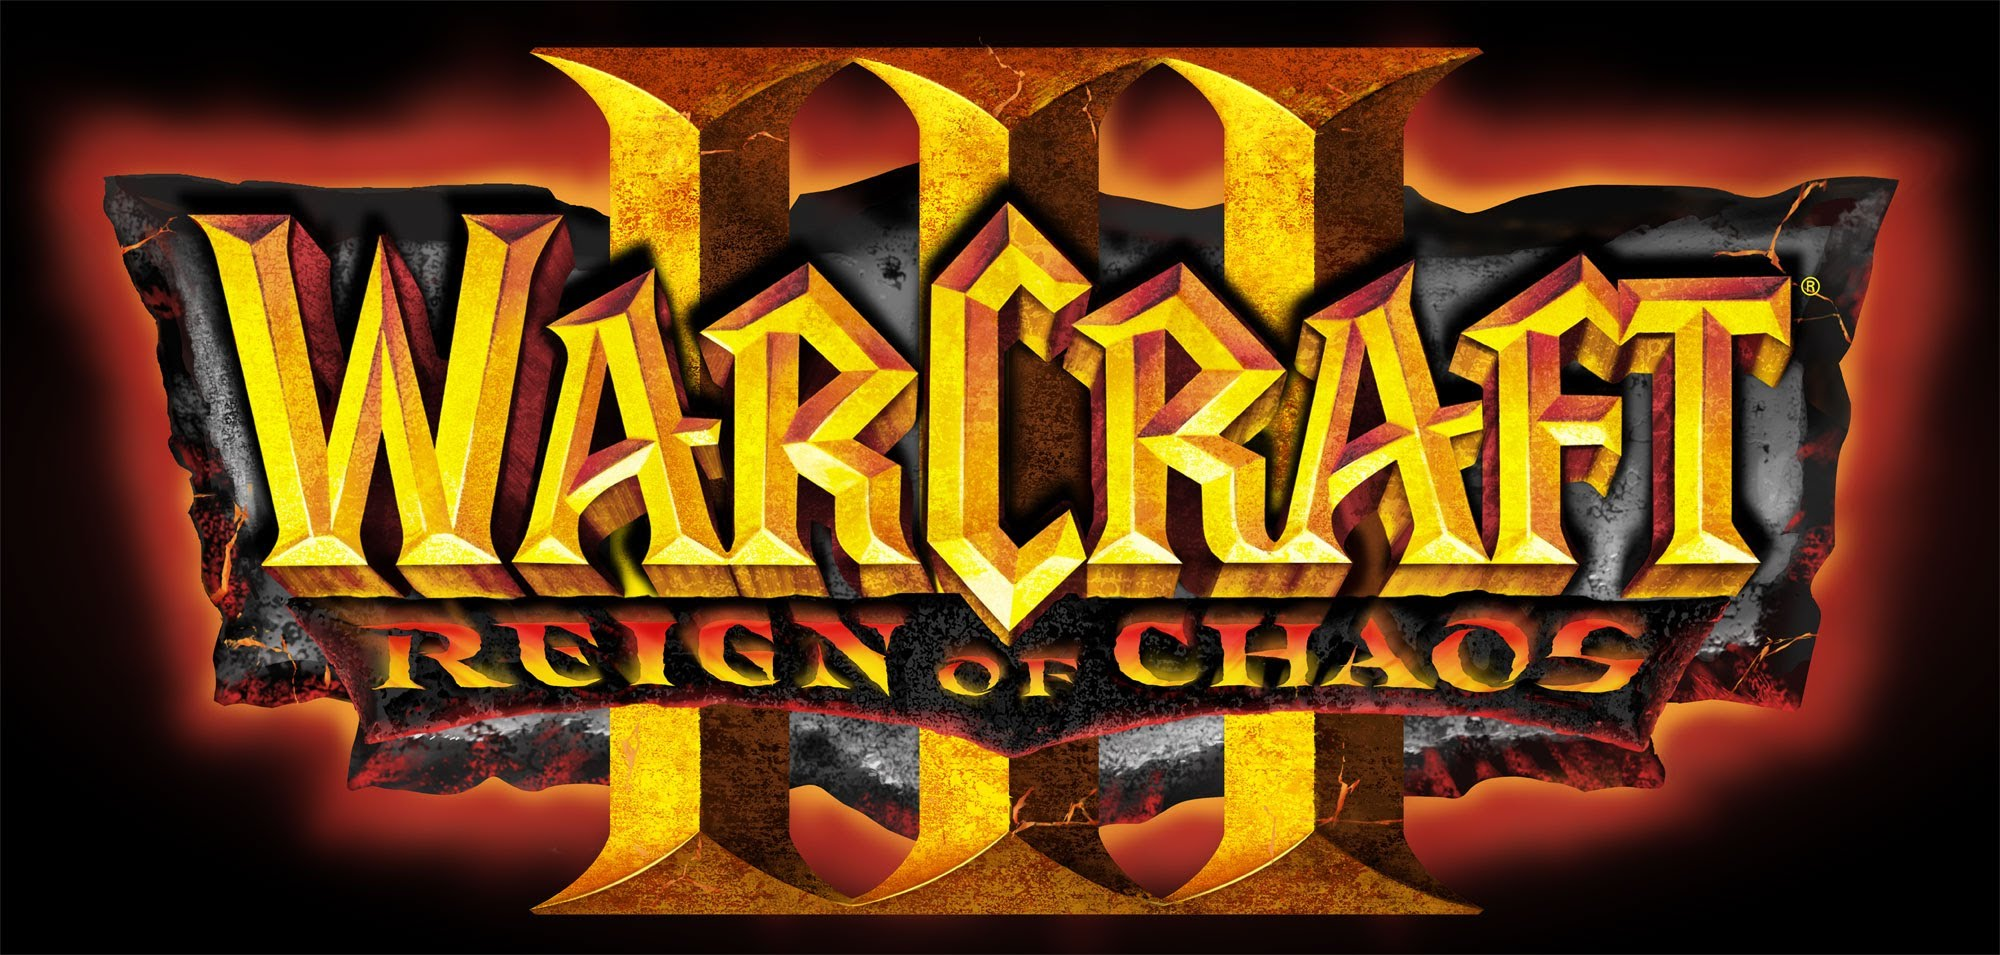 Tải Warcraft 3: Reign of Chaos